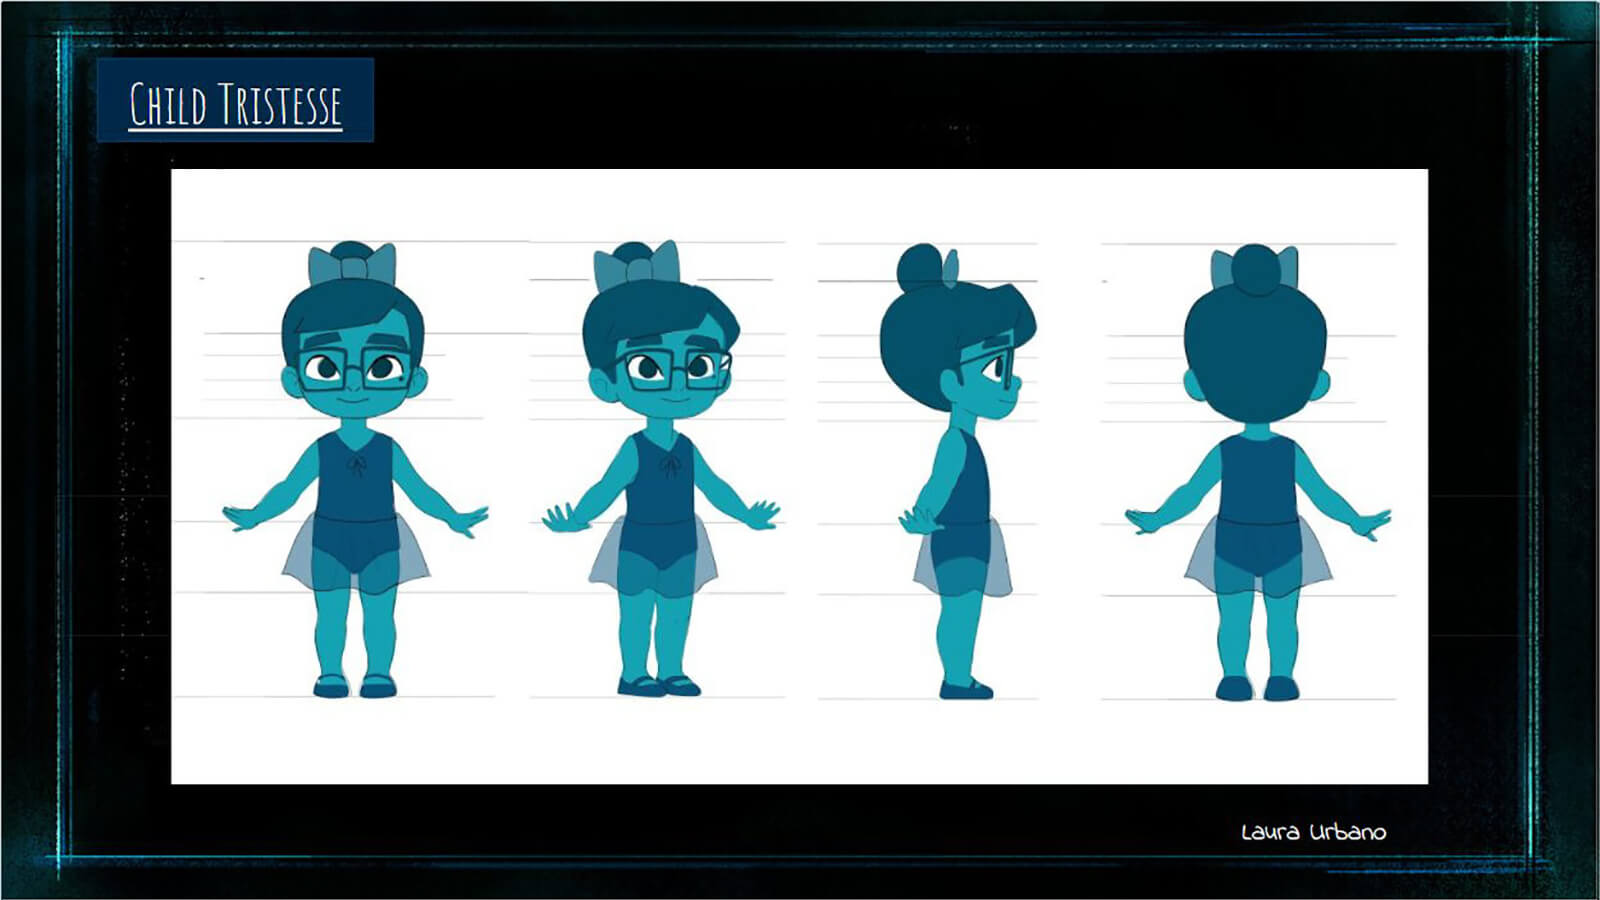 A character turn sheet for the turquoise child version of the film's main character Tristesse.